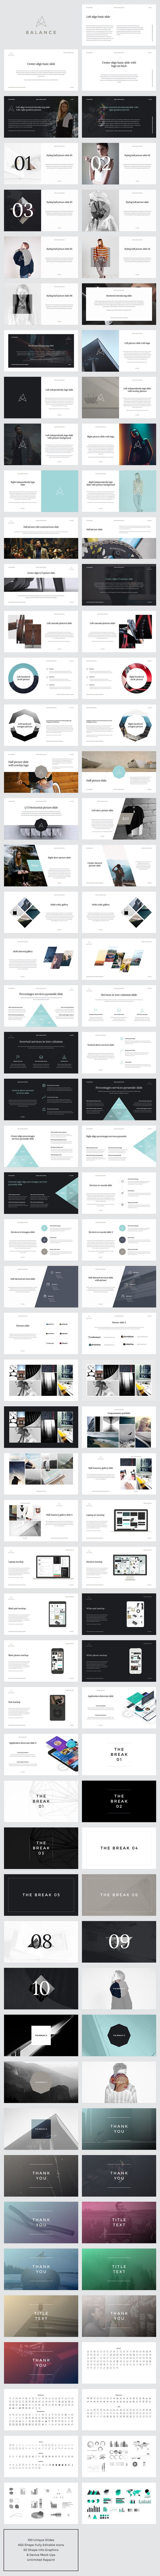 BALANCE PowerPoint Presentation - Presentations - 3